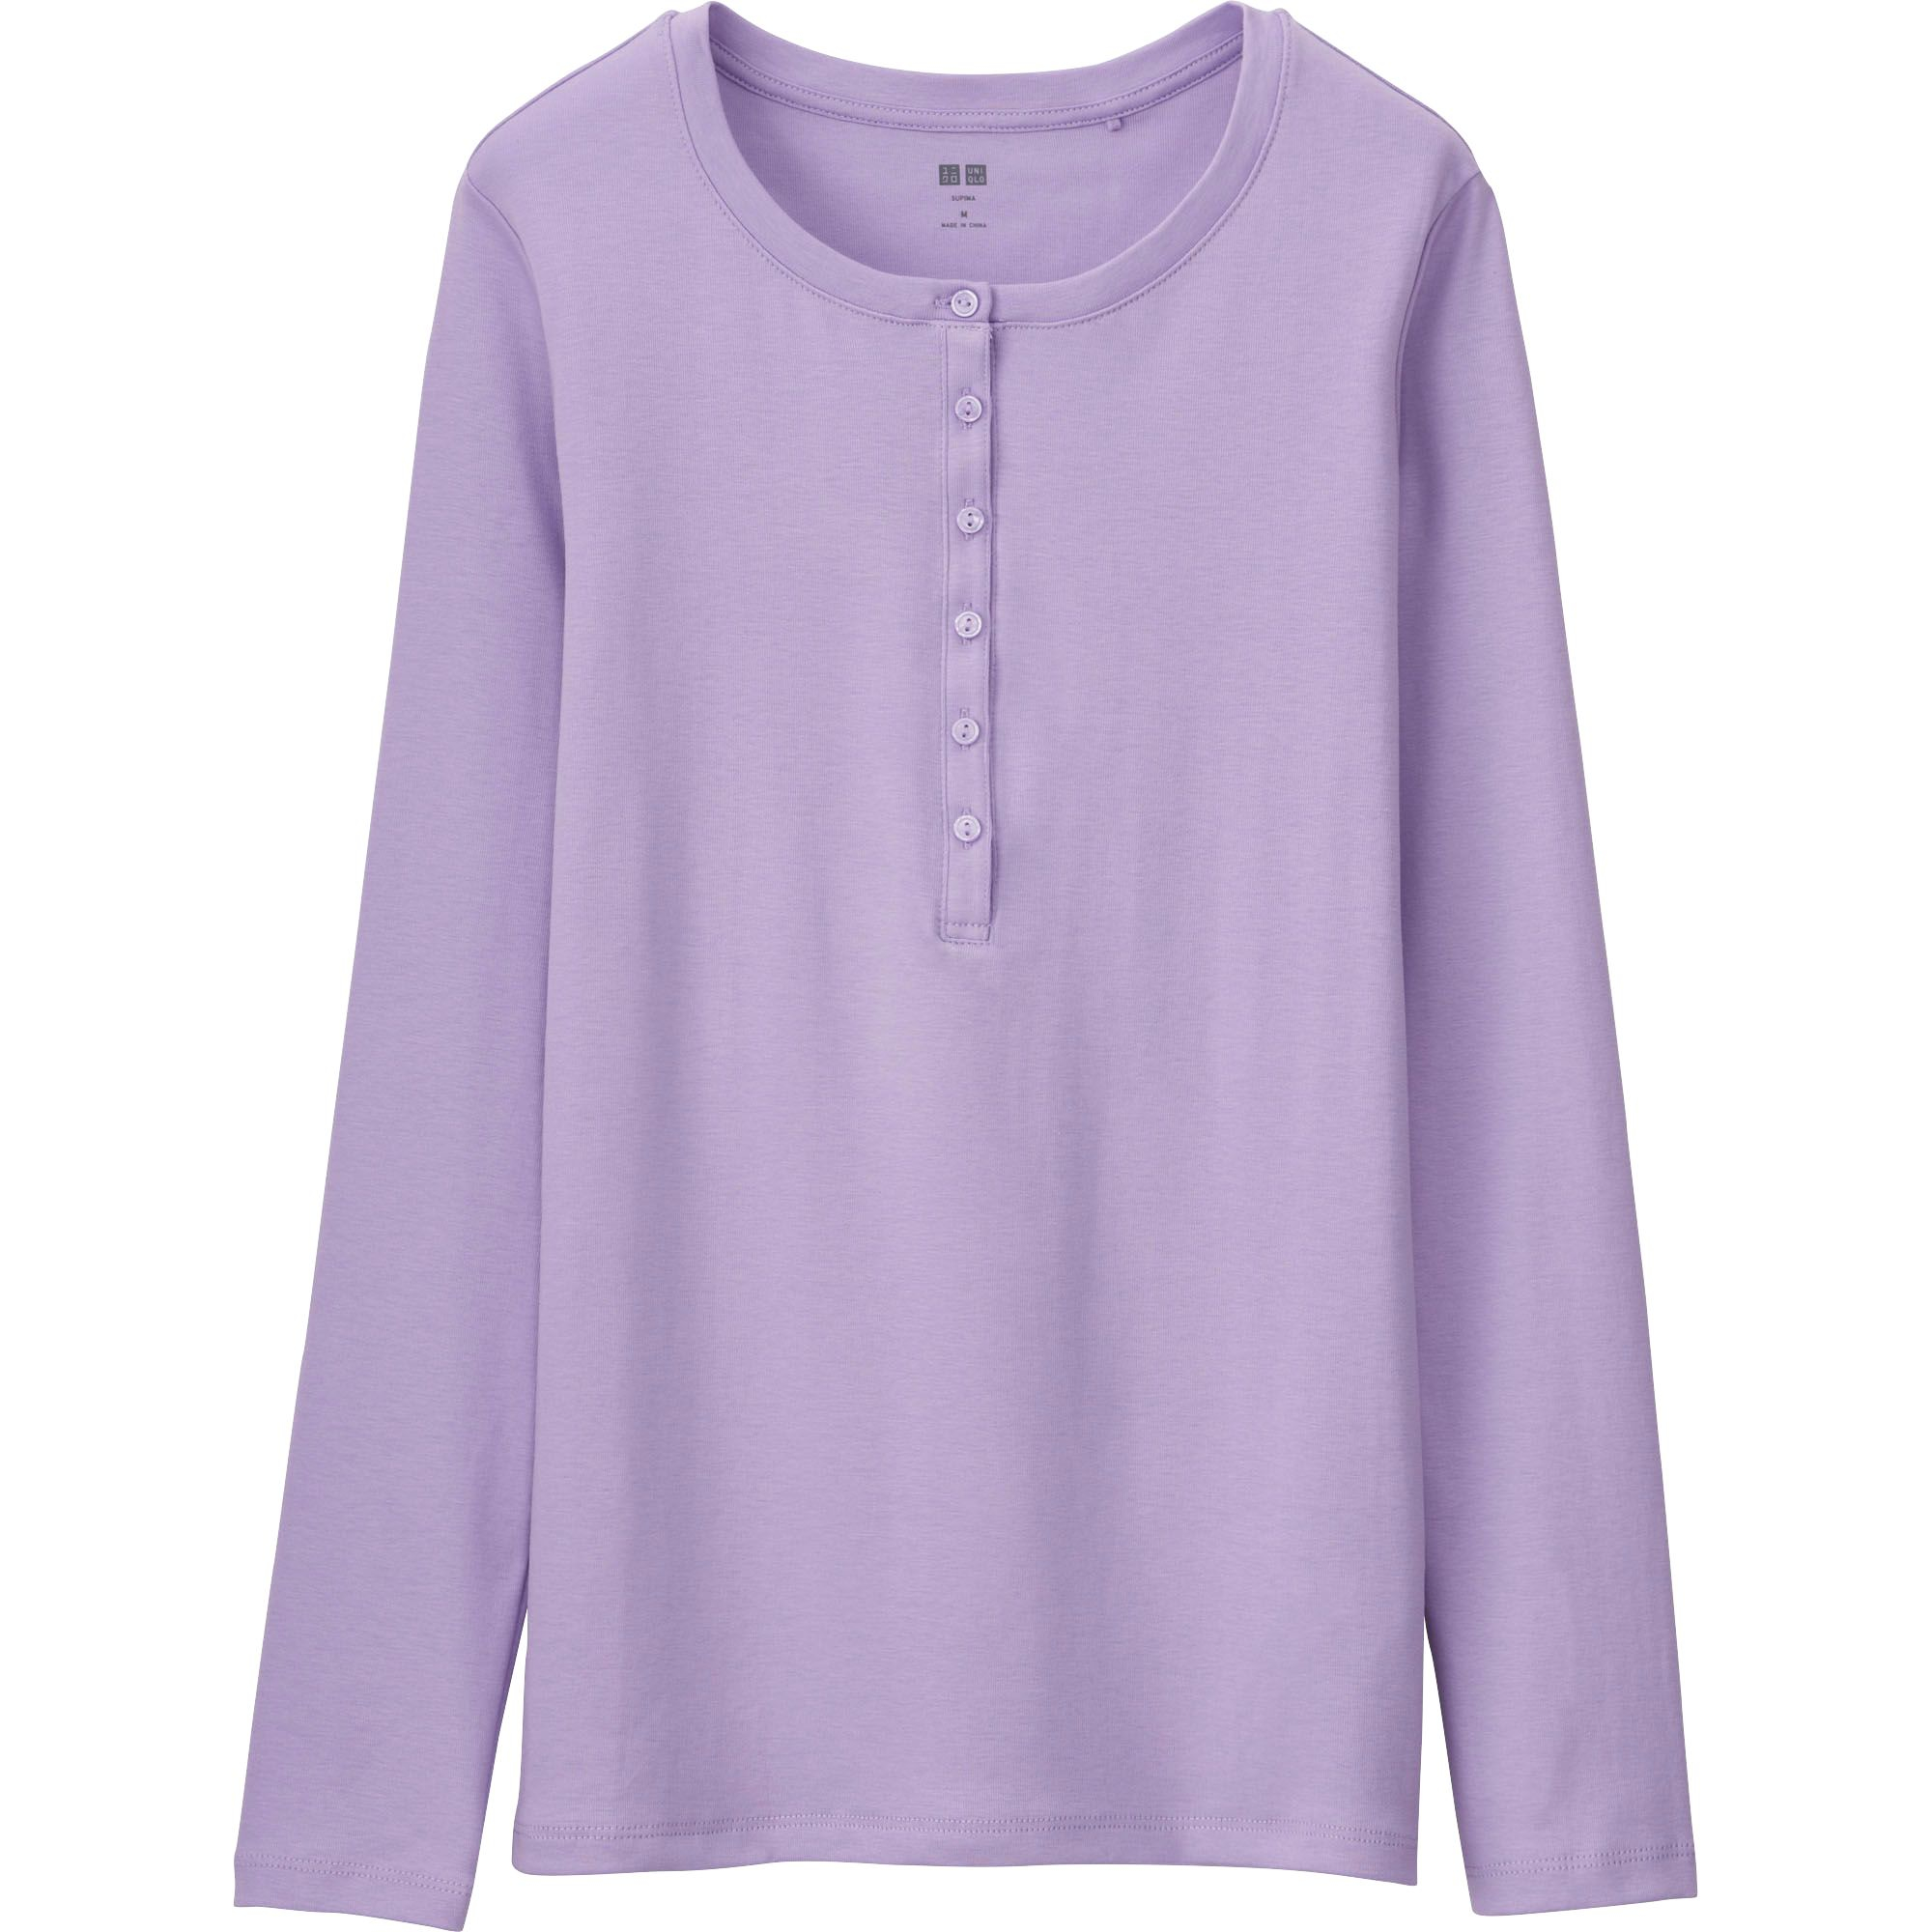 Uniqlo Women 39 S Supima R Cotton Long Sleeve Henley Neck T